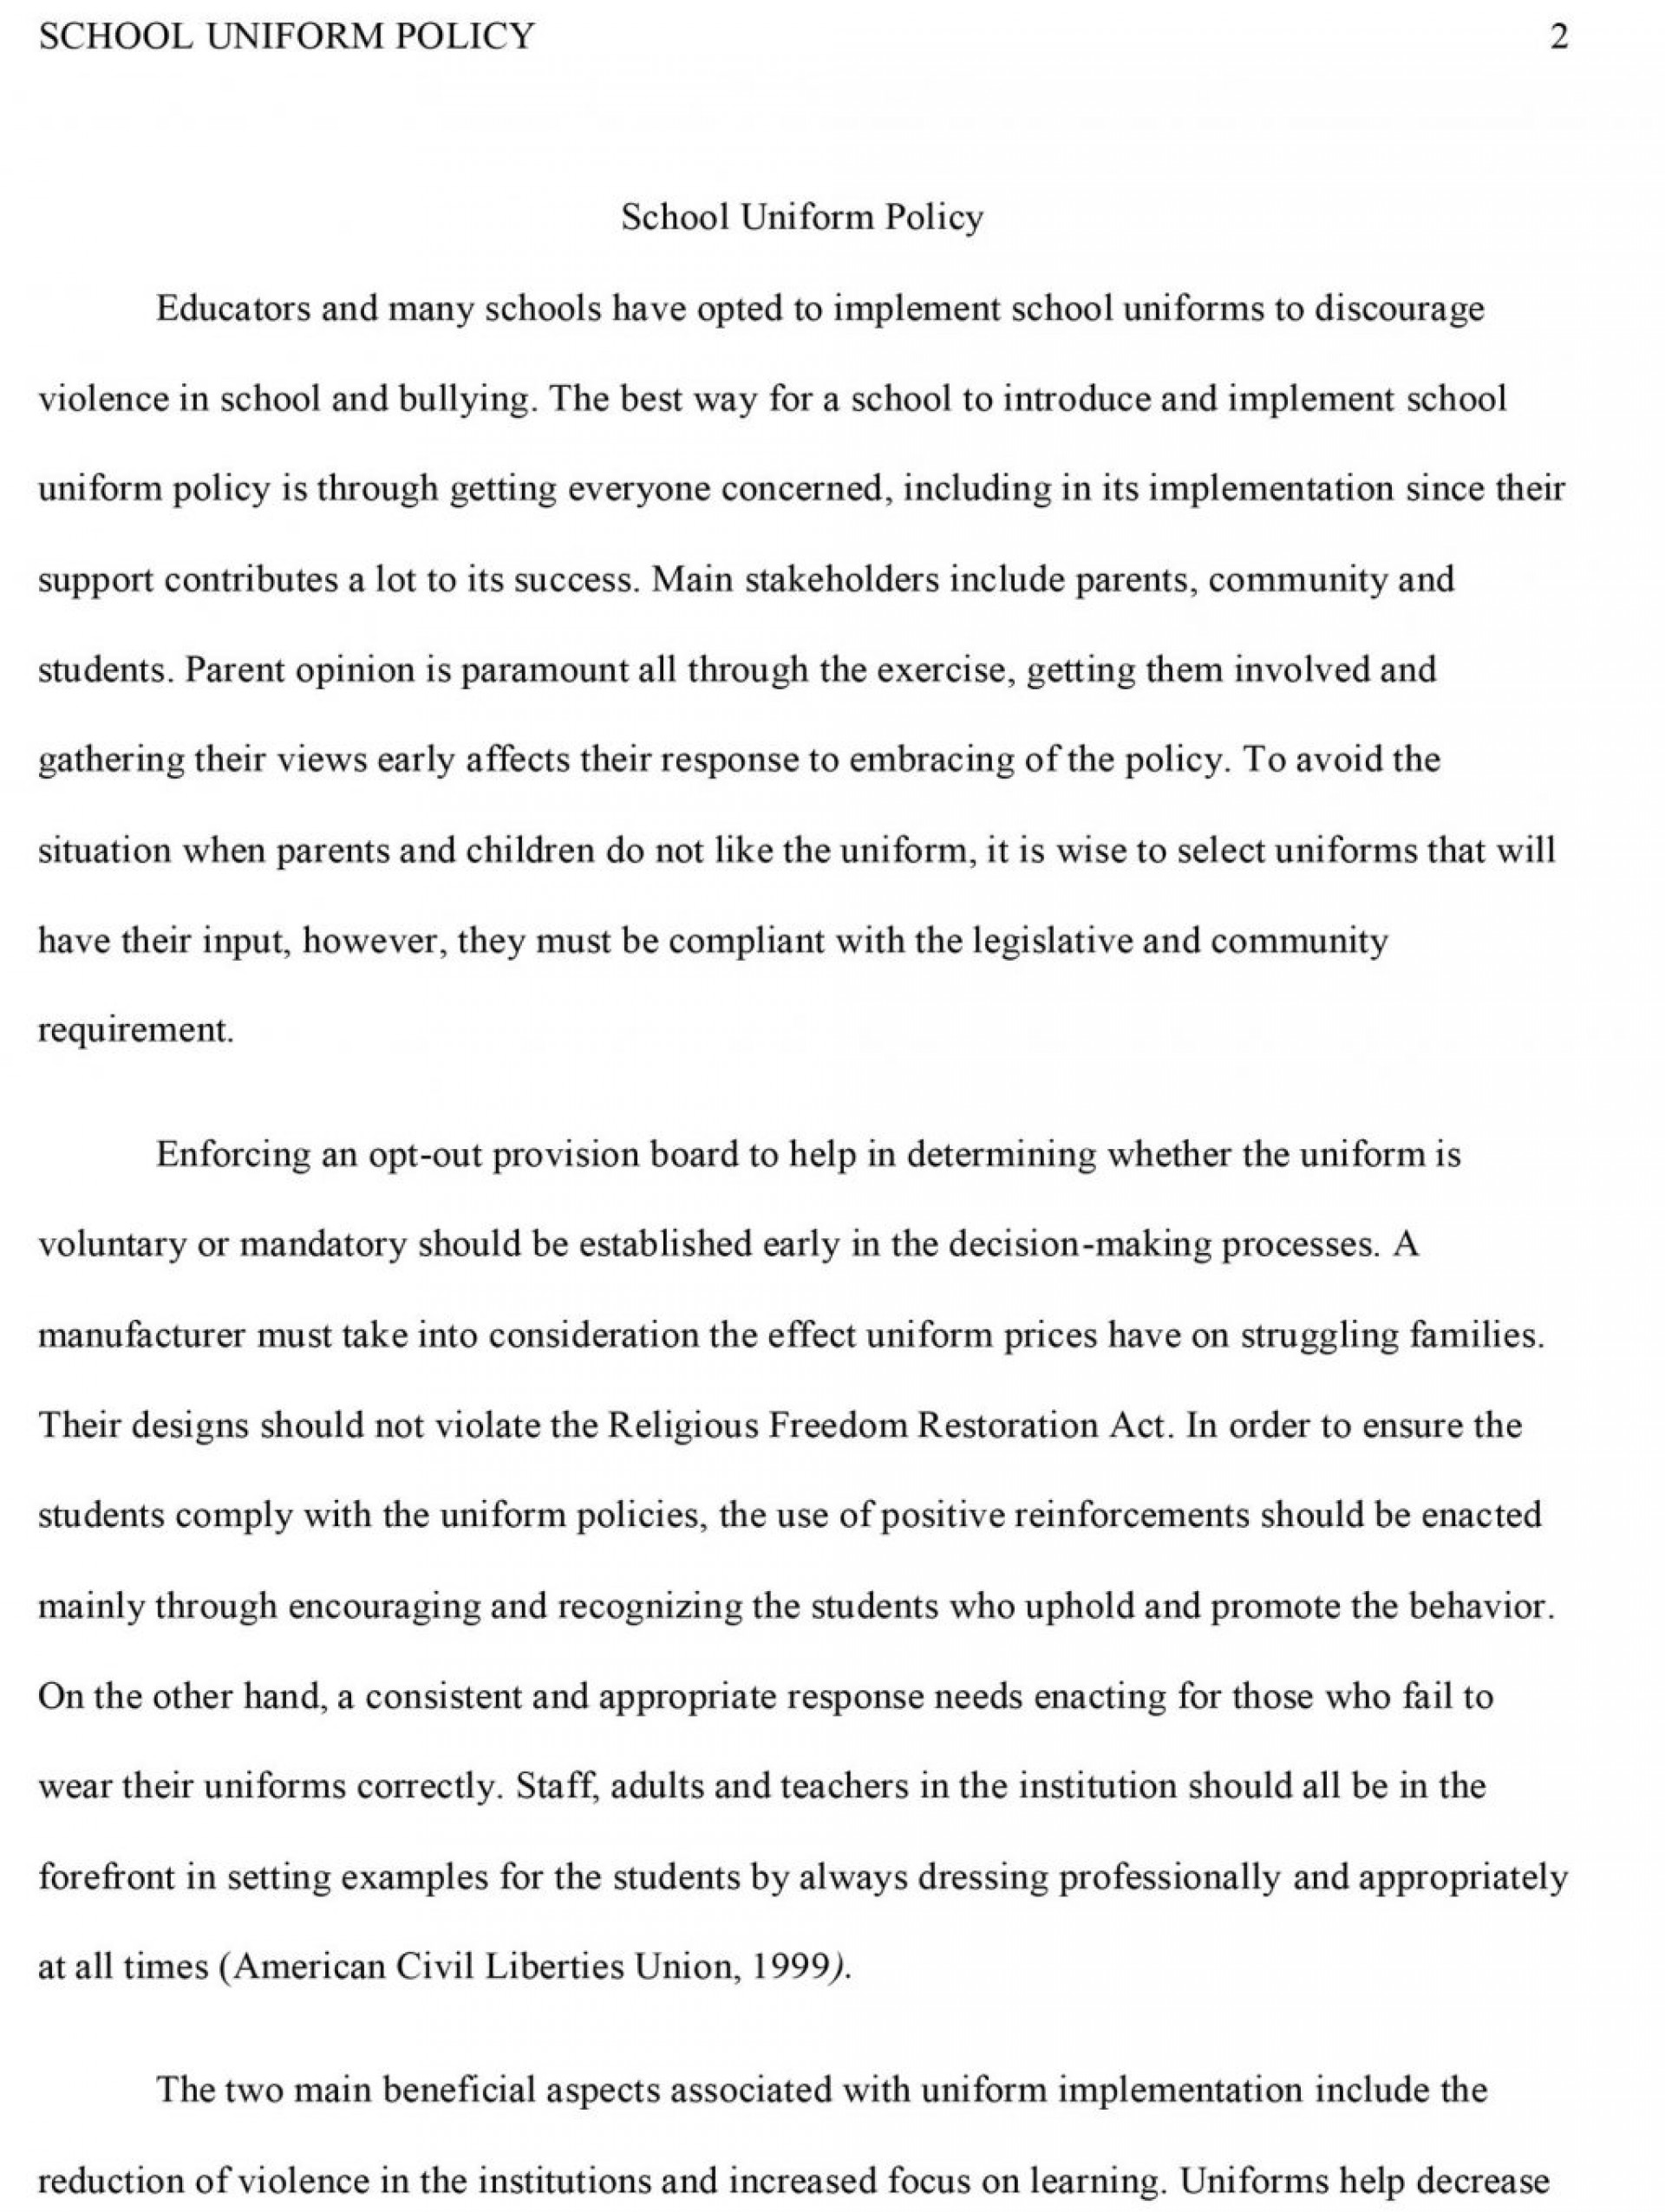 007 Research Paper How To Write Conclusion For Pdf Should Students Wear School20niforms Essay Title Argumentative Against Cons20 Amazing A 1920